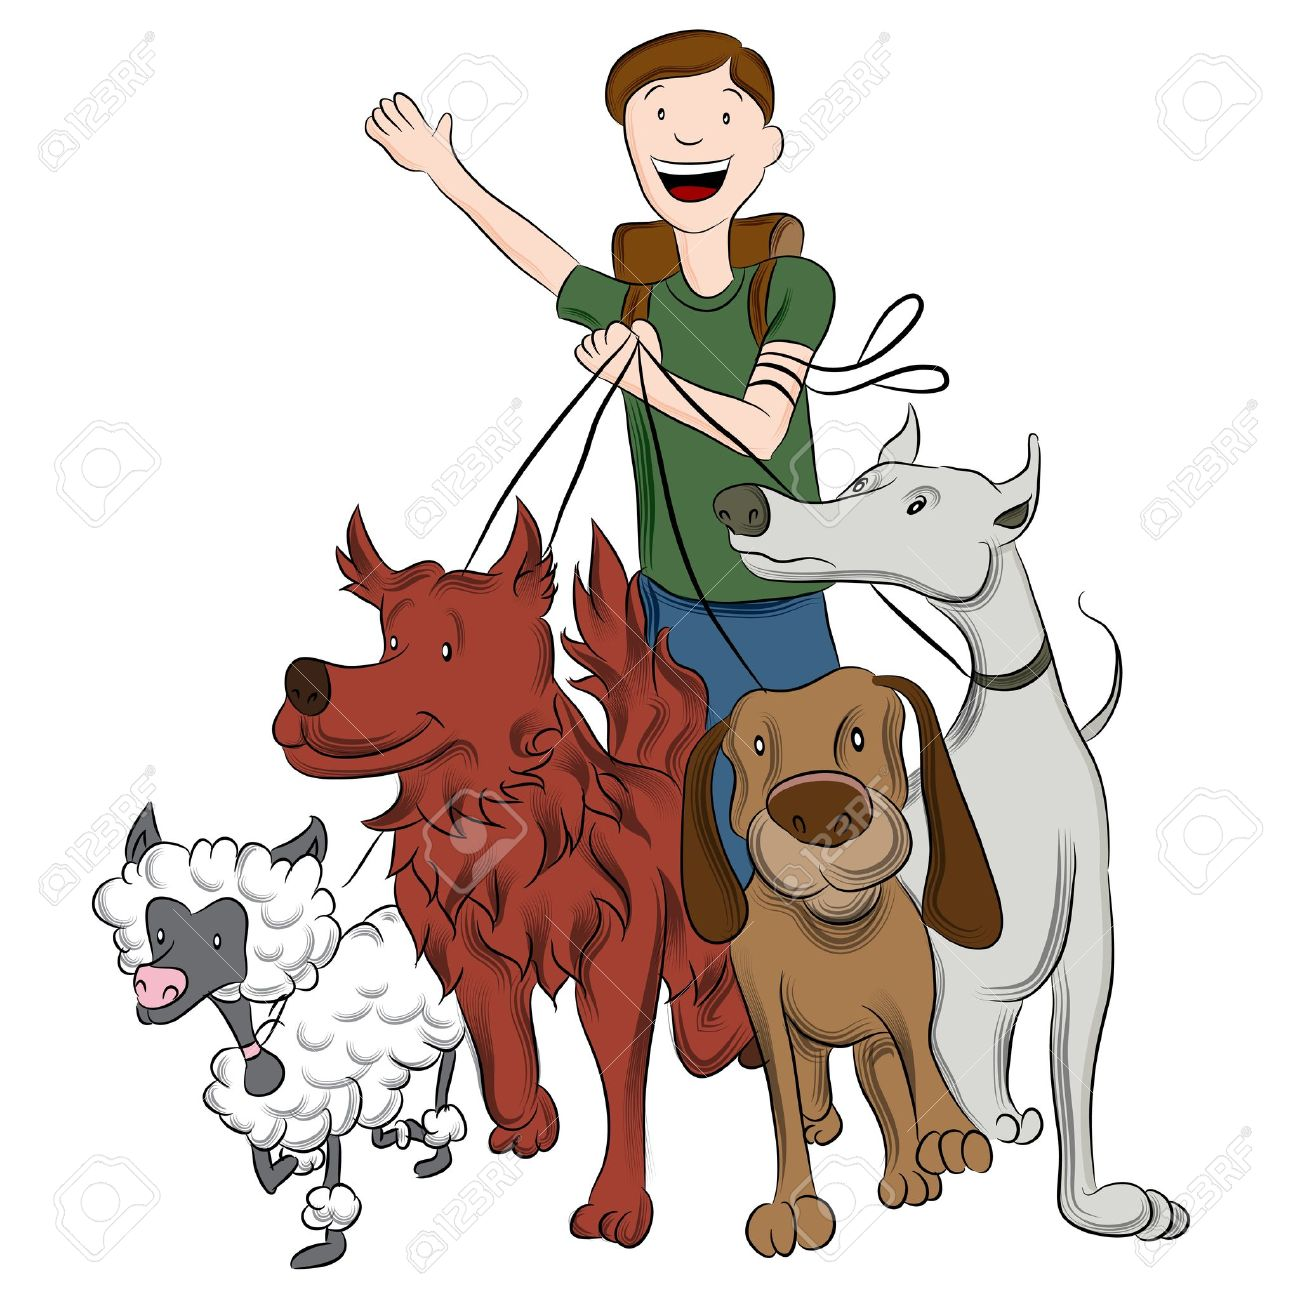 an image of a man walking dogs royalty free cliparts vectors and rh 123rf com clipart dog walking dog walking clipart free